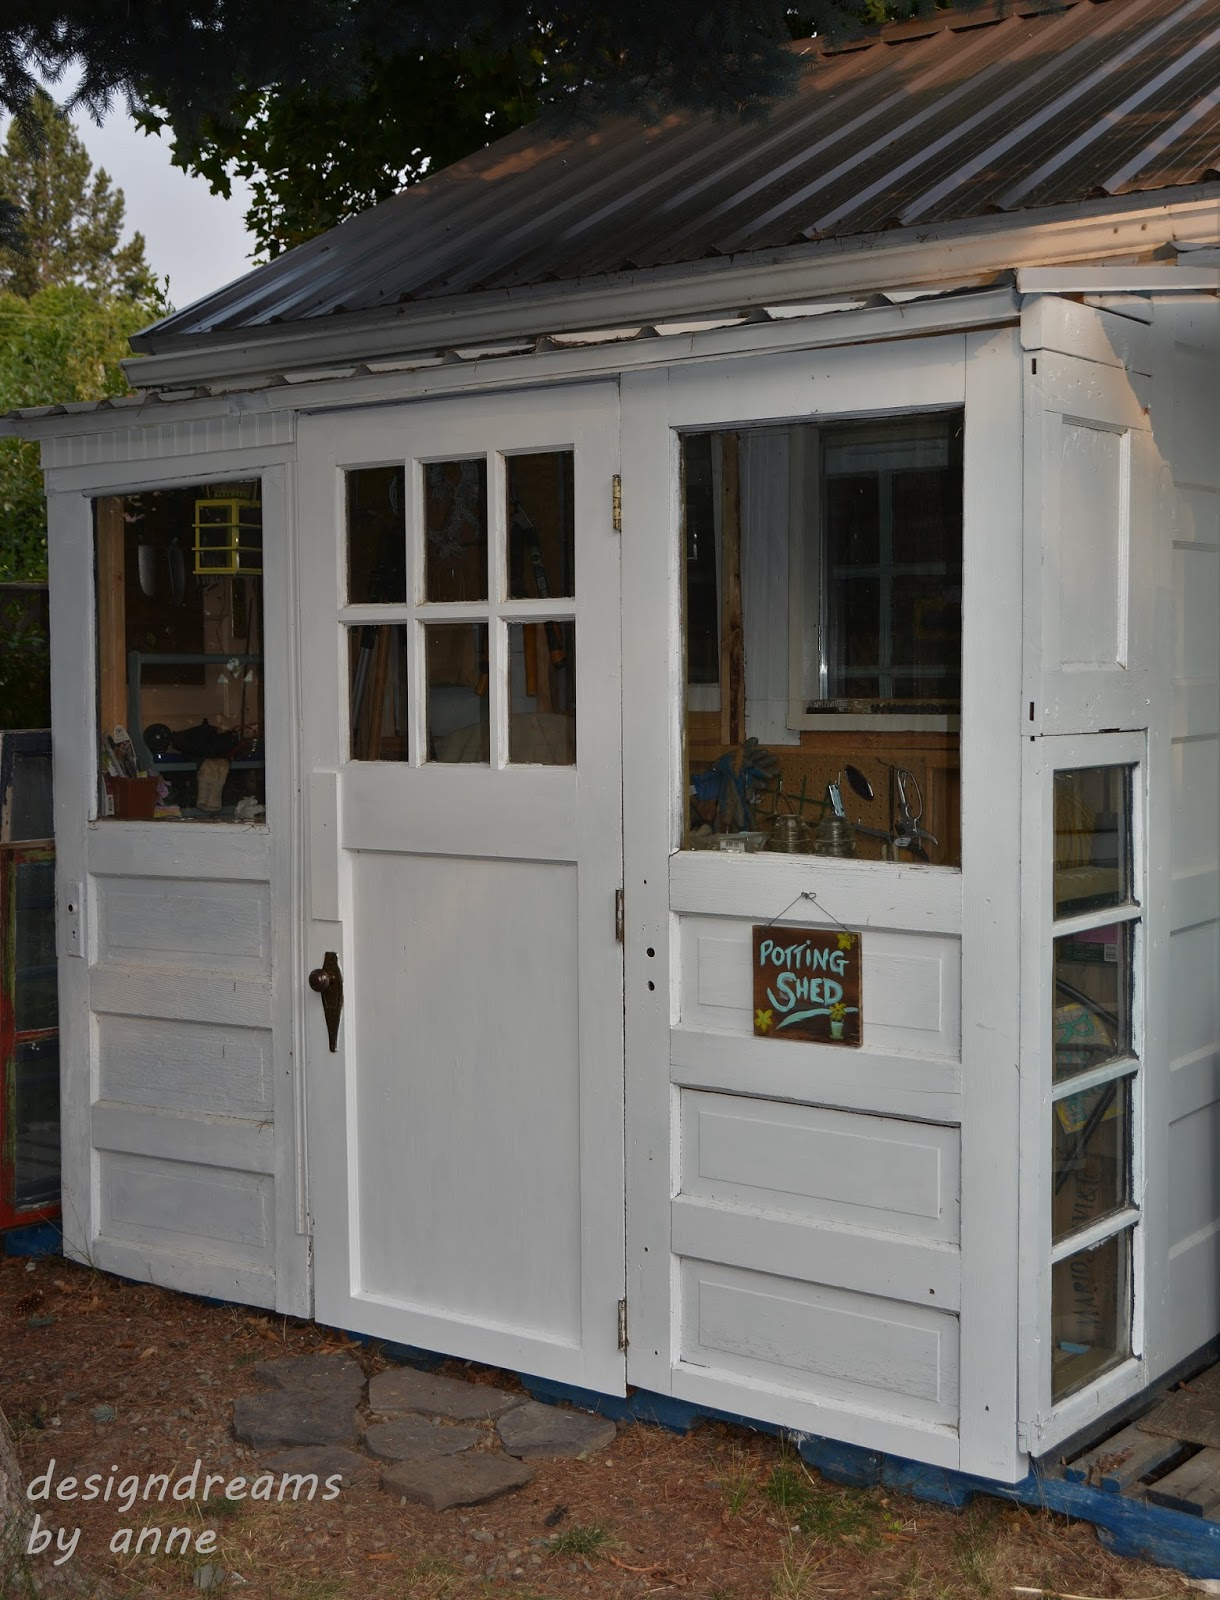 DesignDreams by Anne Building a Shed with Old Doors